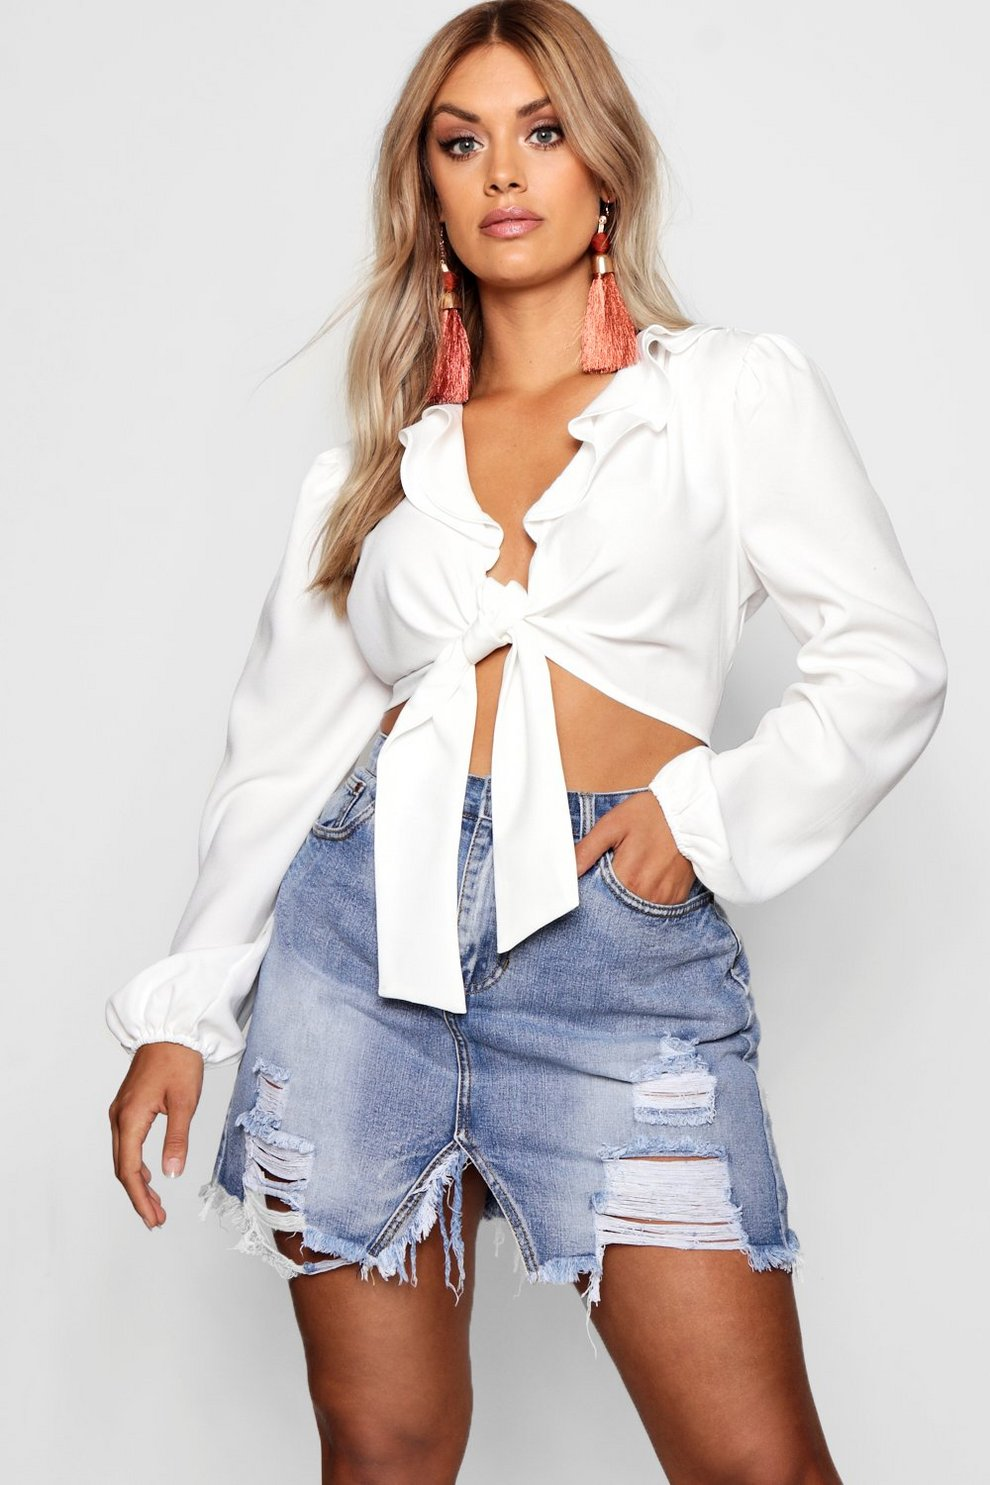 Discount High Quality Boohoo Plus Extreme Ripped Wash Denim Skirt Buy Cheap Visit Wiki For Sale wbavwTMjM